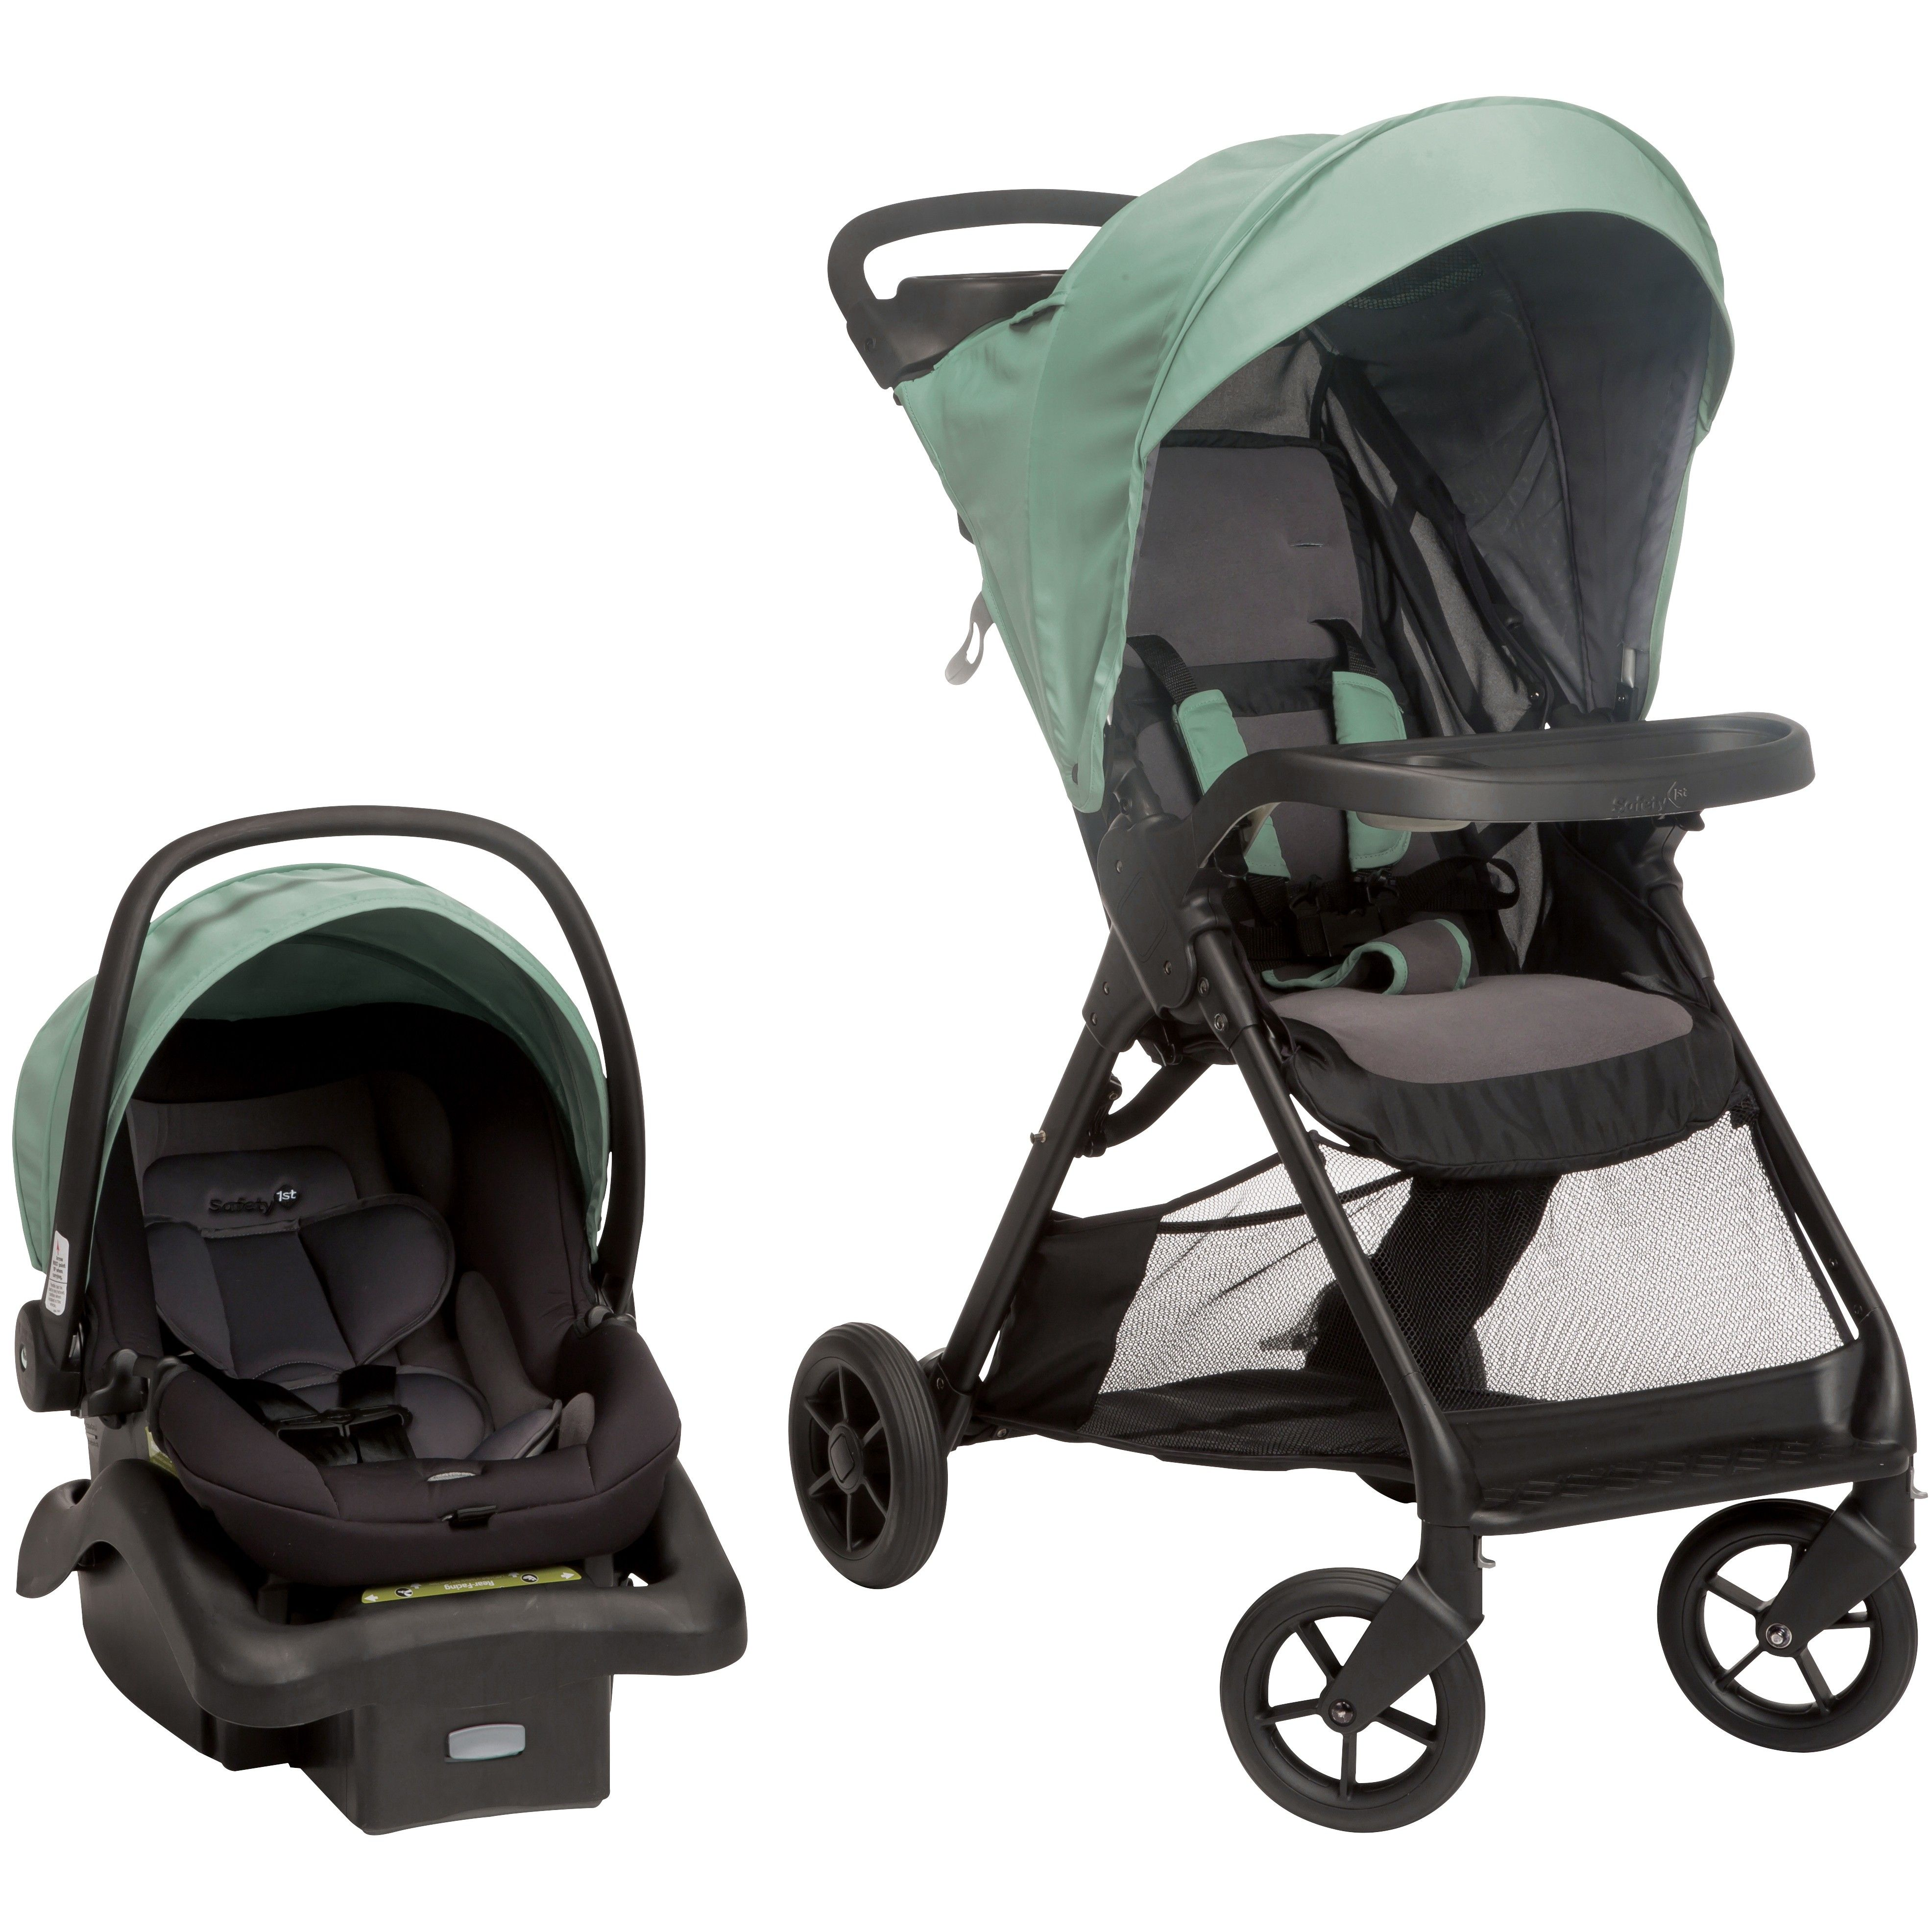 Smooth Ride Travel System Moss Green Travel system